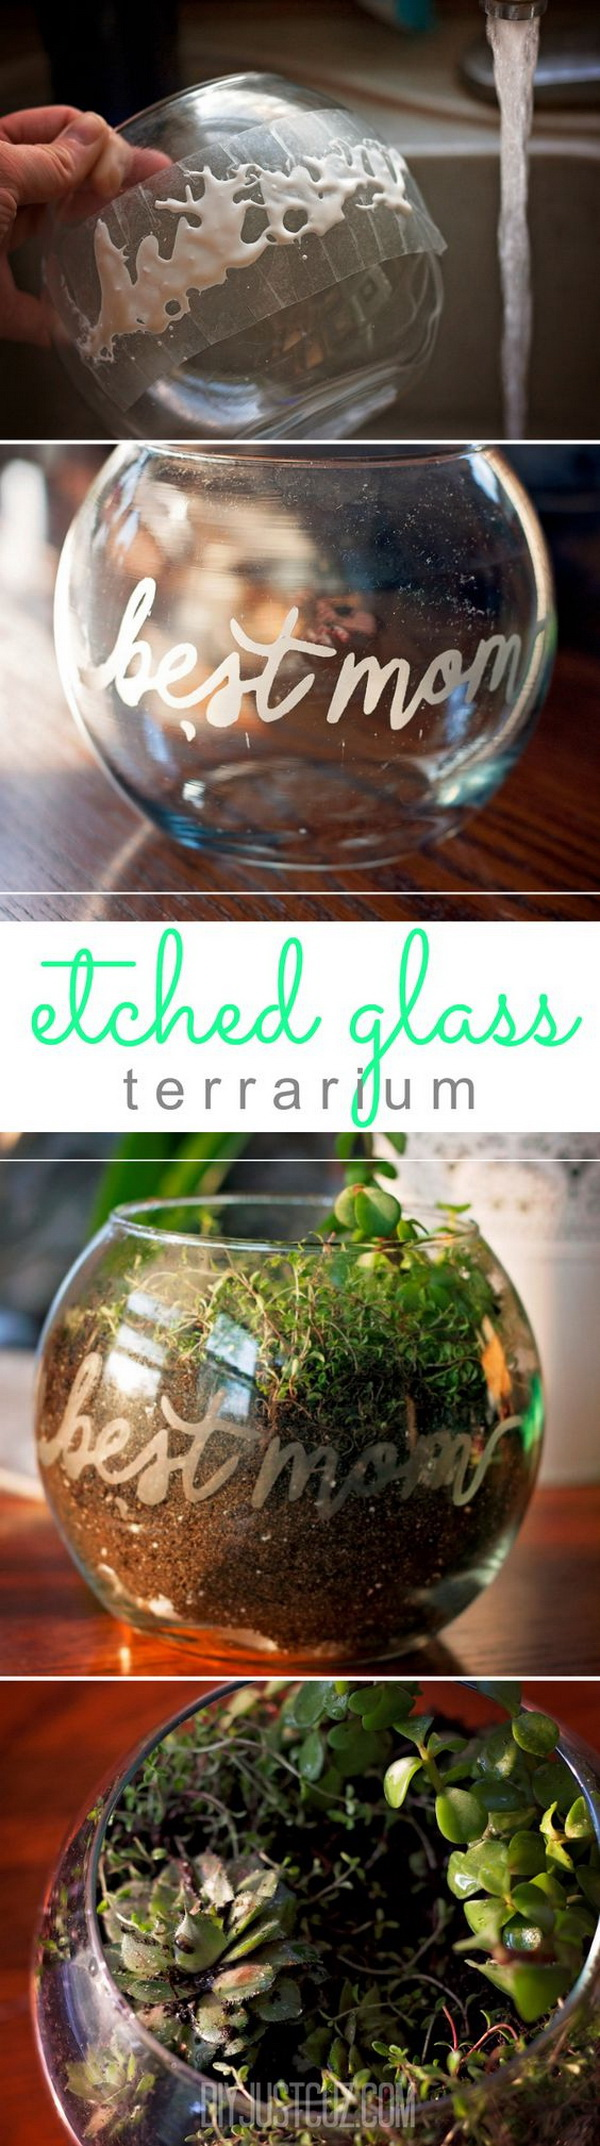 DIY terrarium Planters for Mother's Day. Handmade, diy gifts are alway the best gifts for your mom! Here's an etched glass terrarium made using the Silhouette Cameo for Mother's Day.